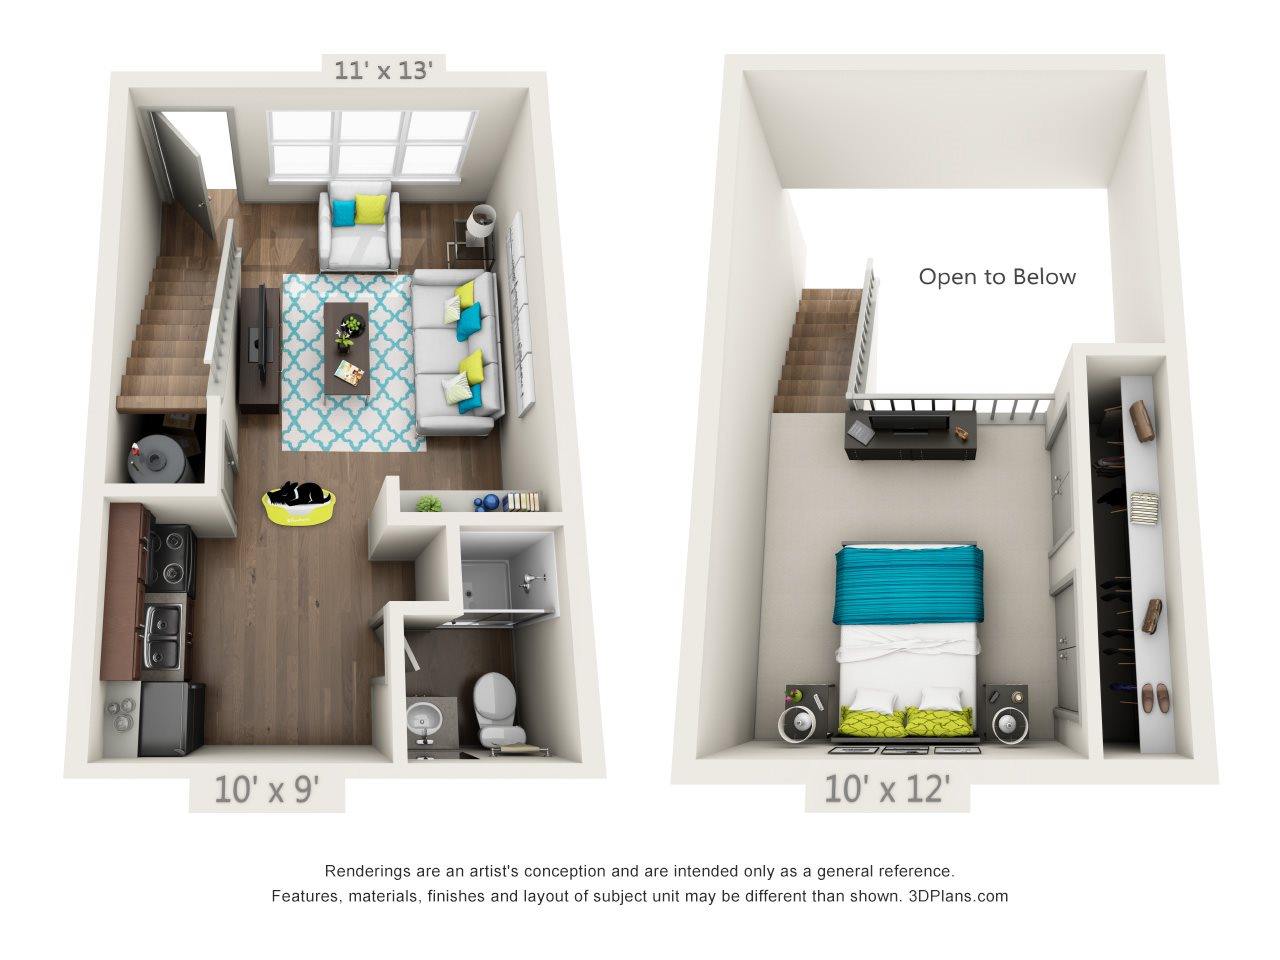 1x1 Loft - Refreshed Floor Plan 2